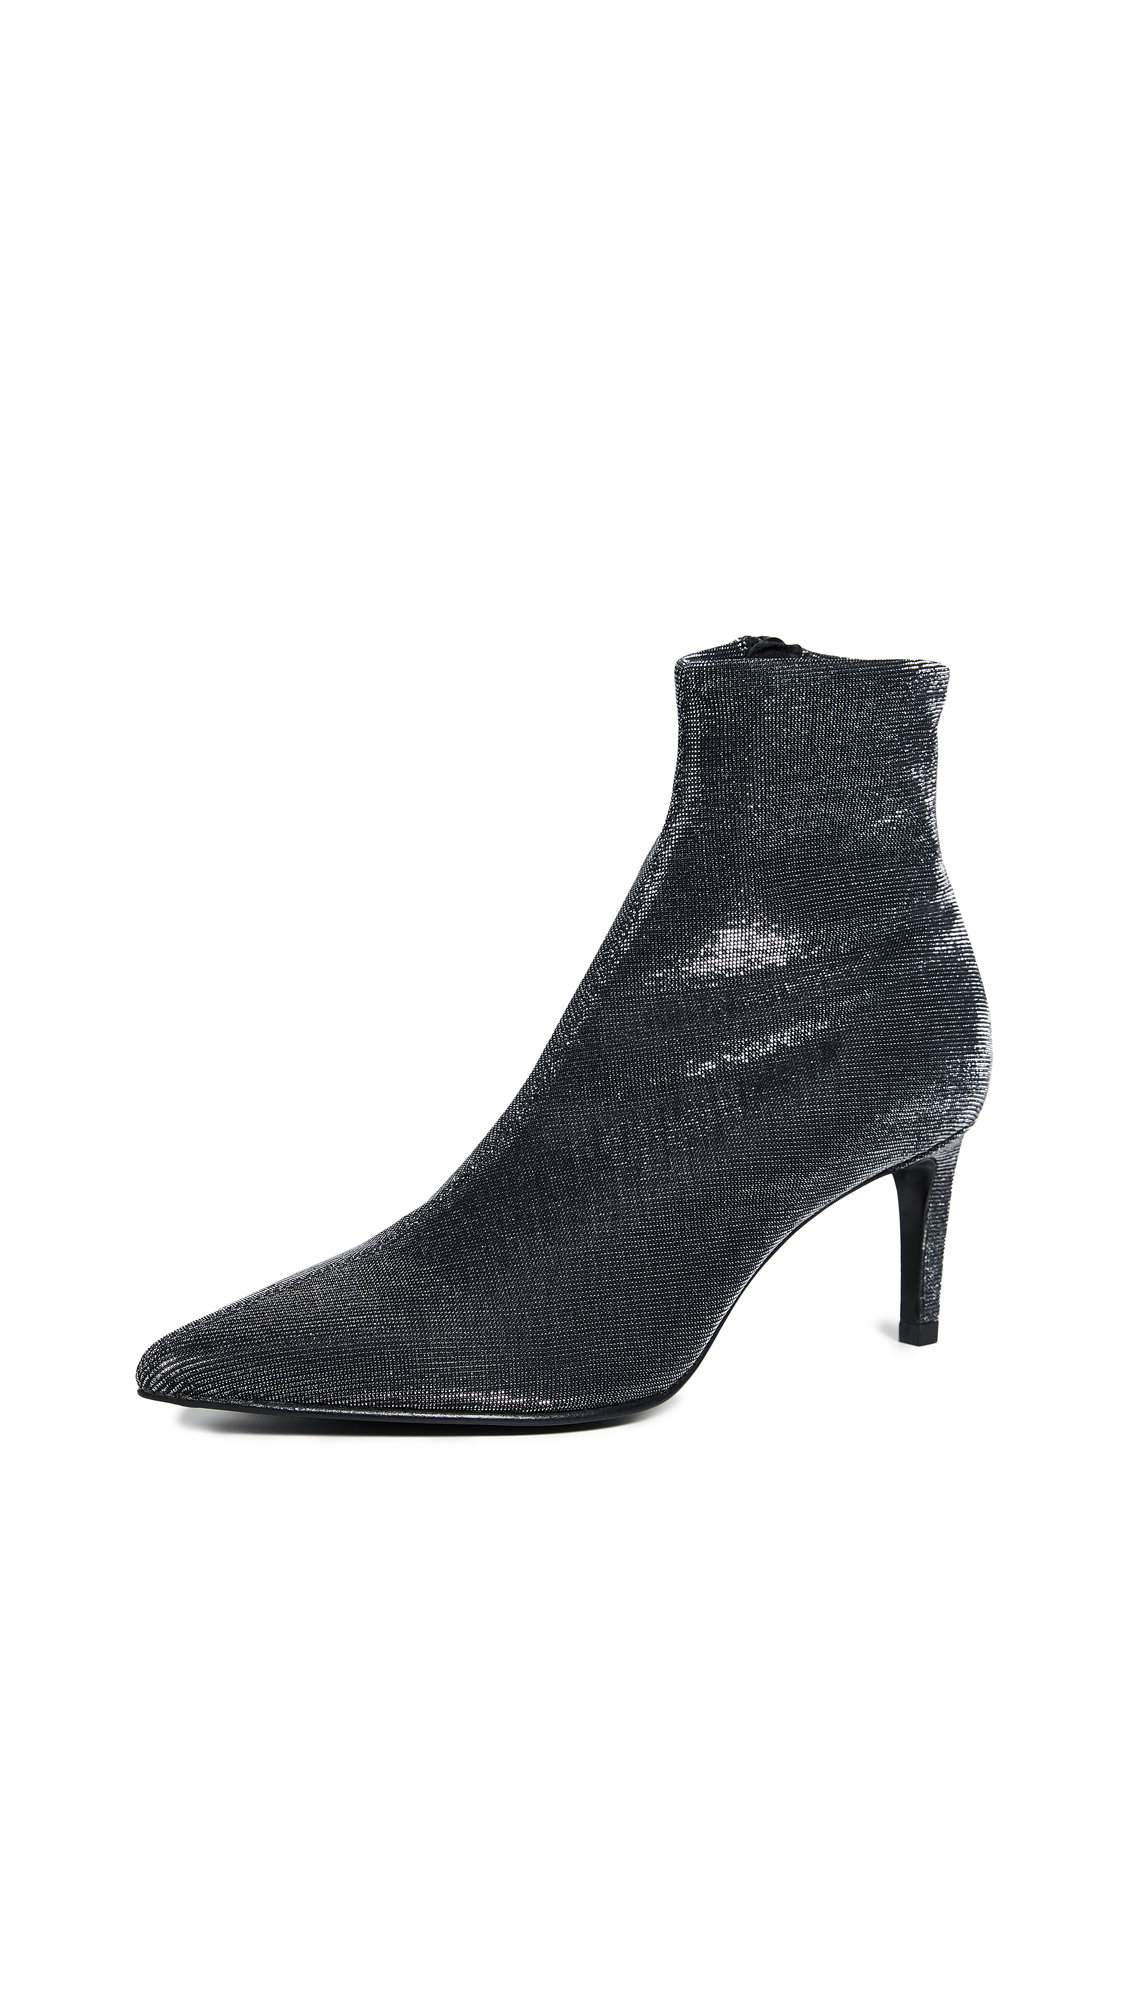 Rag & Bone Beha Booties - Black/Silver